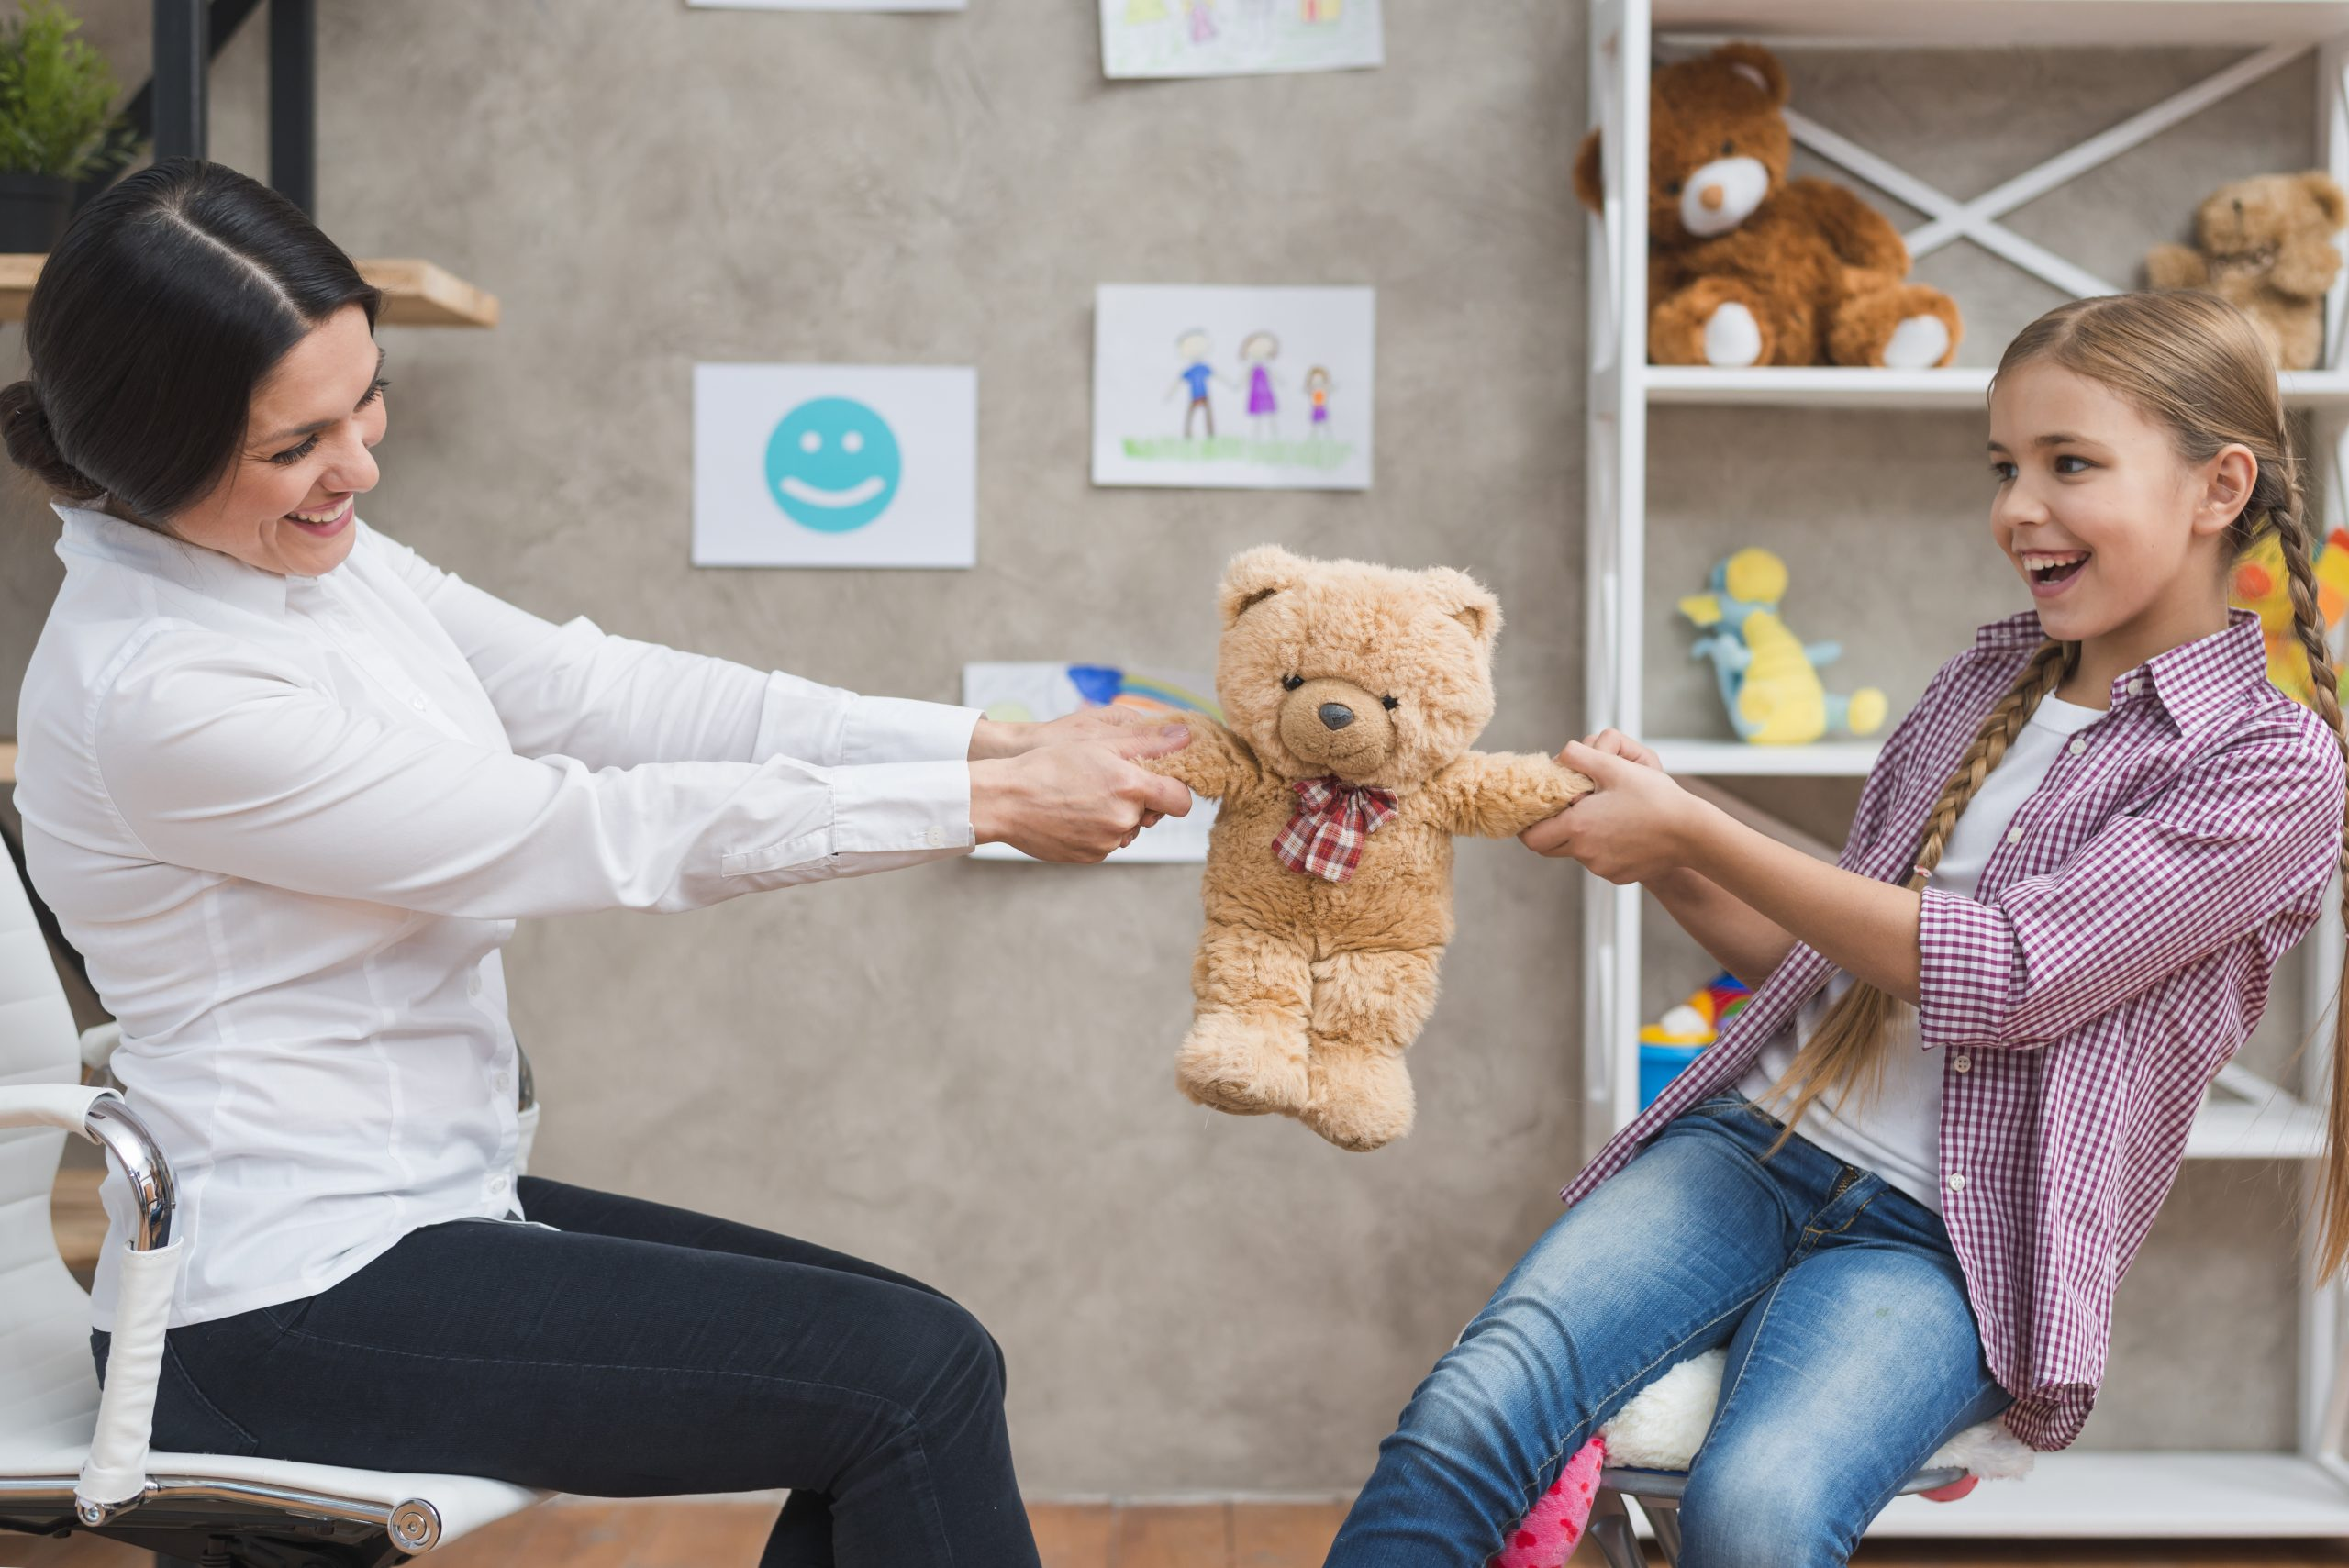 Play Therapy for Children in Birmingham AL - Exceeding Contentment Behavioral Health Inc.